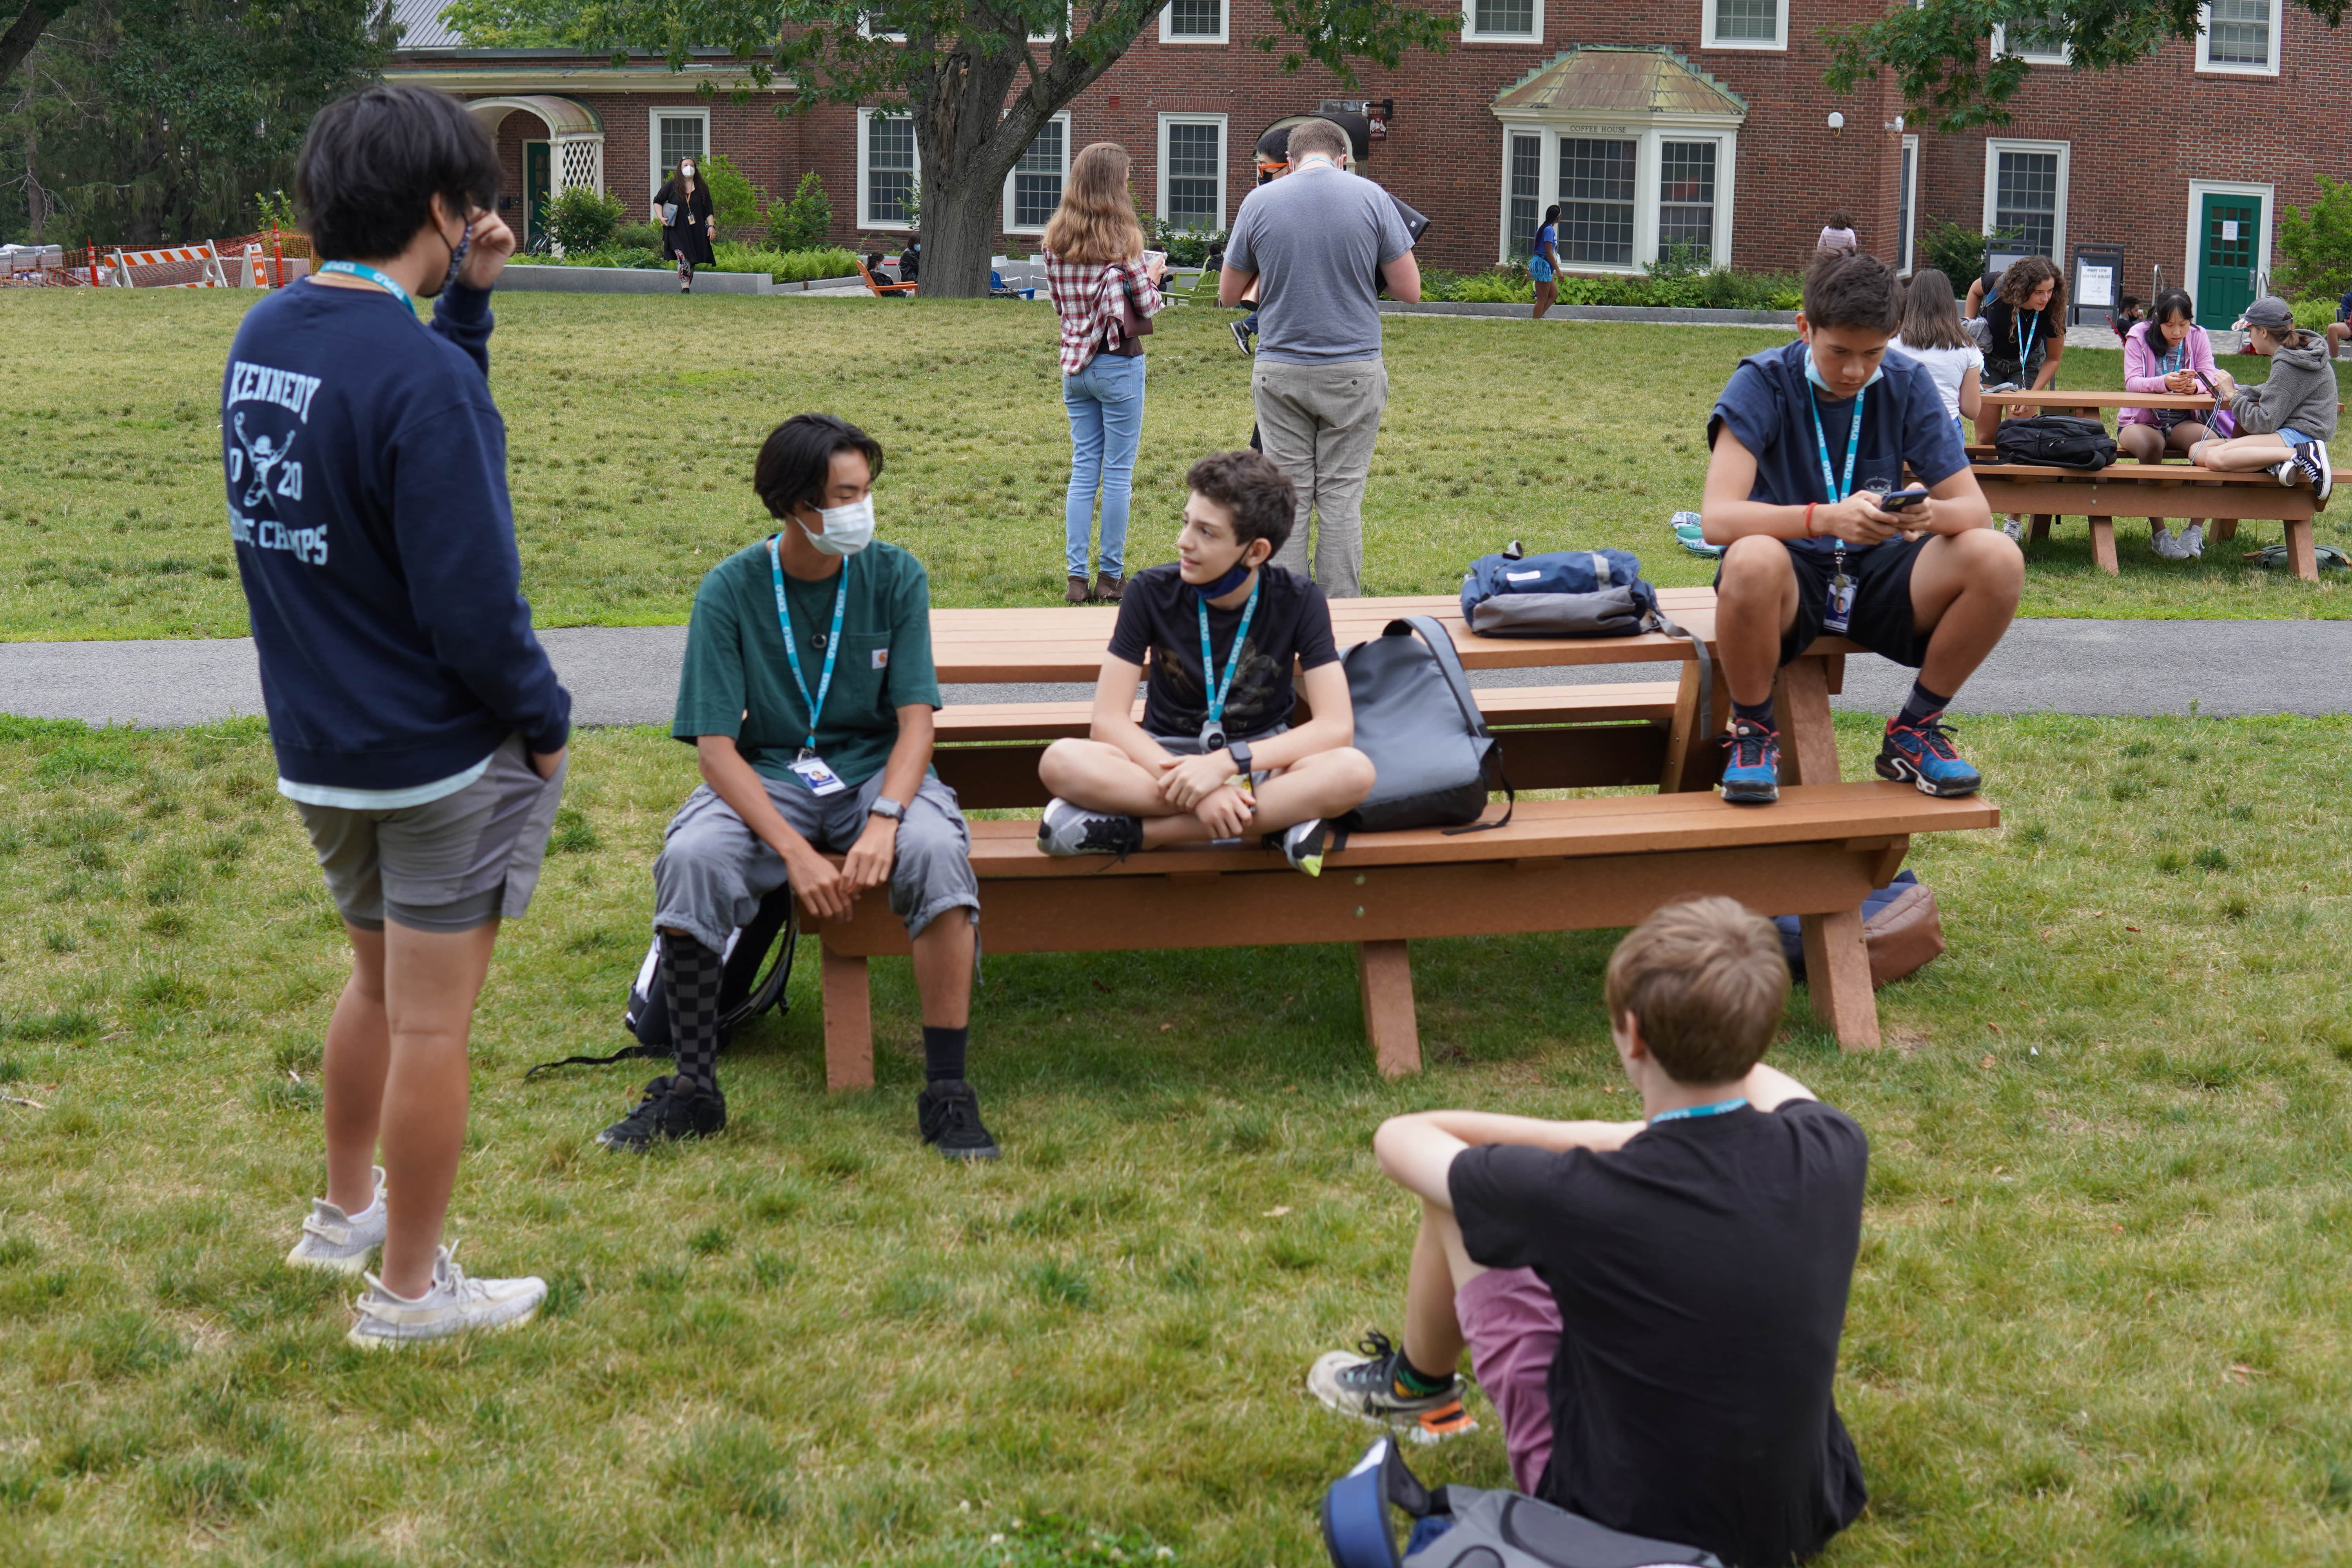 Students in at and around a picnic table with their bags close by as they wait for the morning meeting.